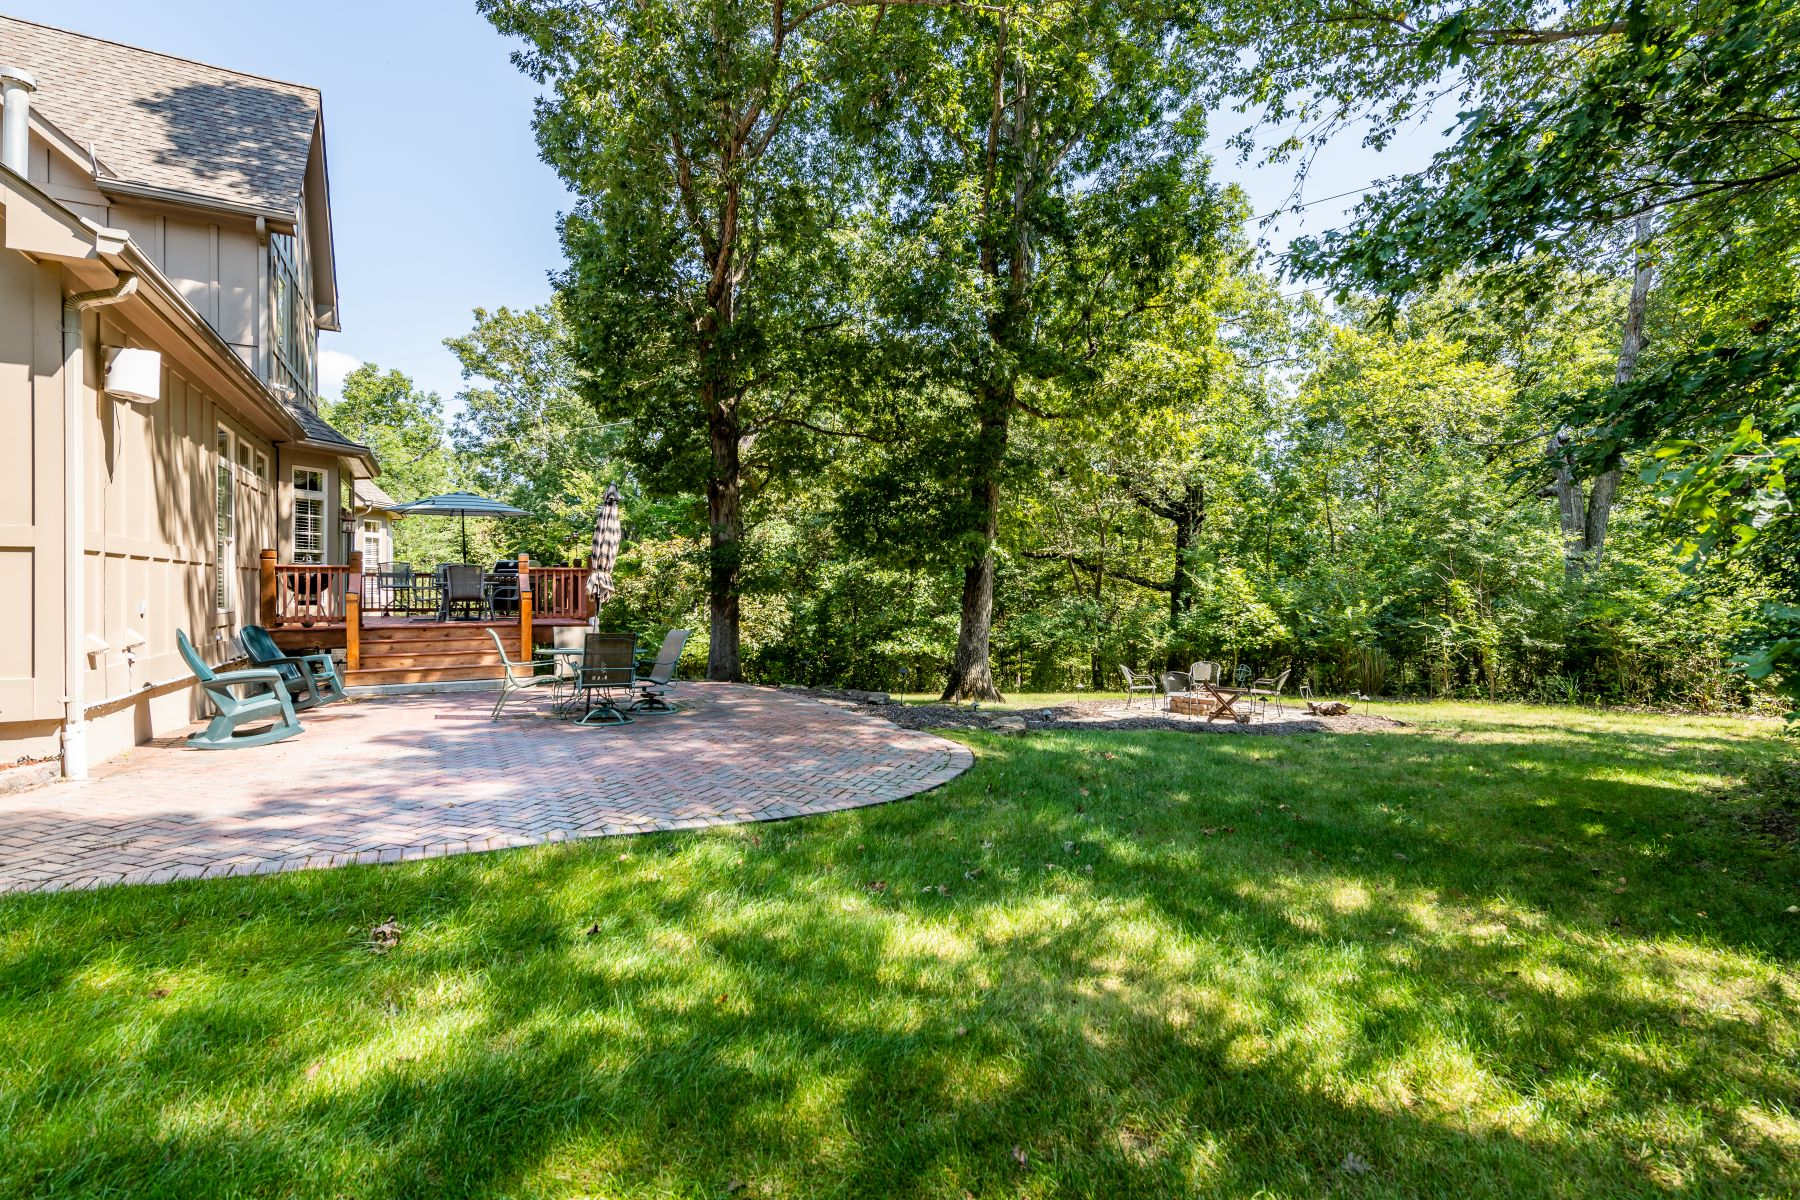 Additional photo for property listing at Luxurious Estate in private Wildwood neighborhood 18518 Great Meadow Road Wildwood, Missouri 63038 United States